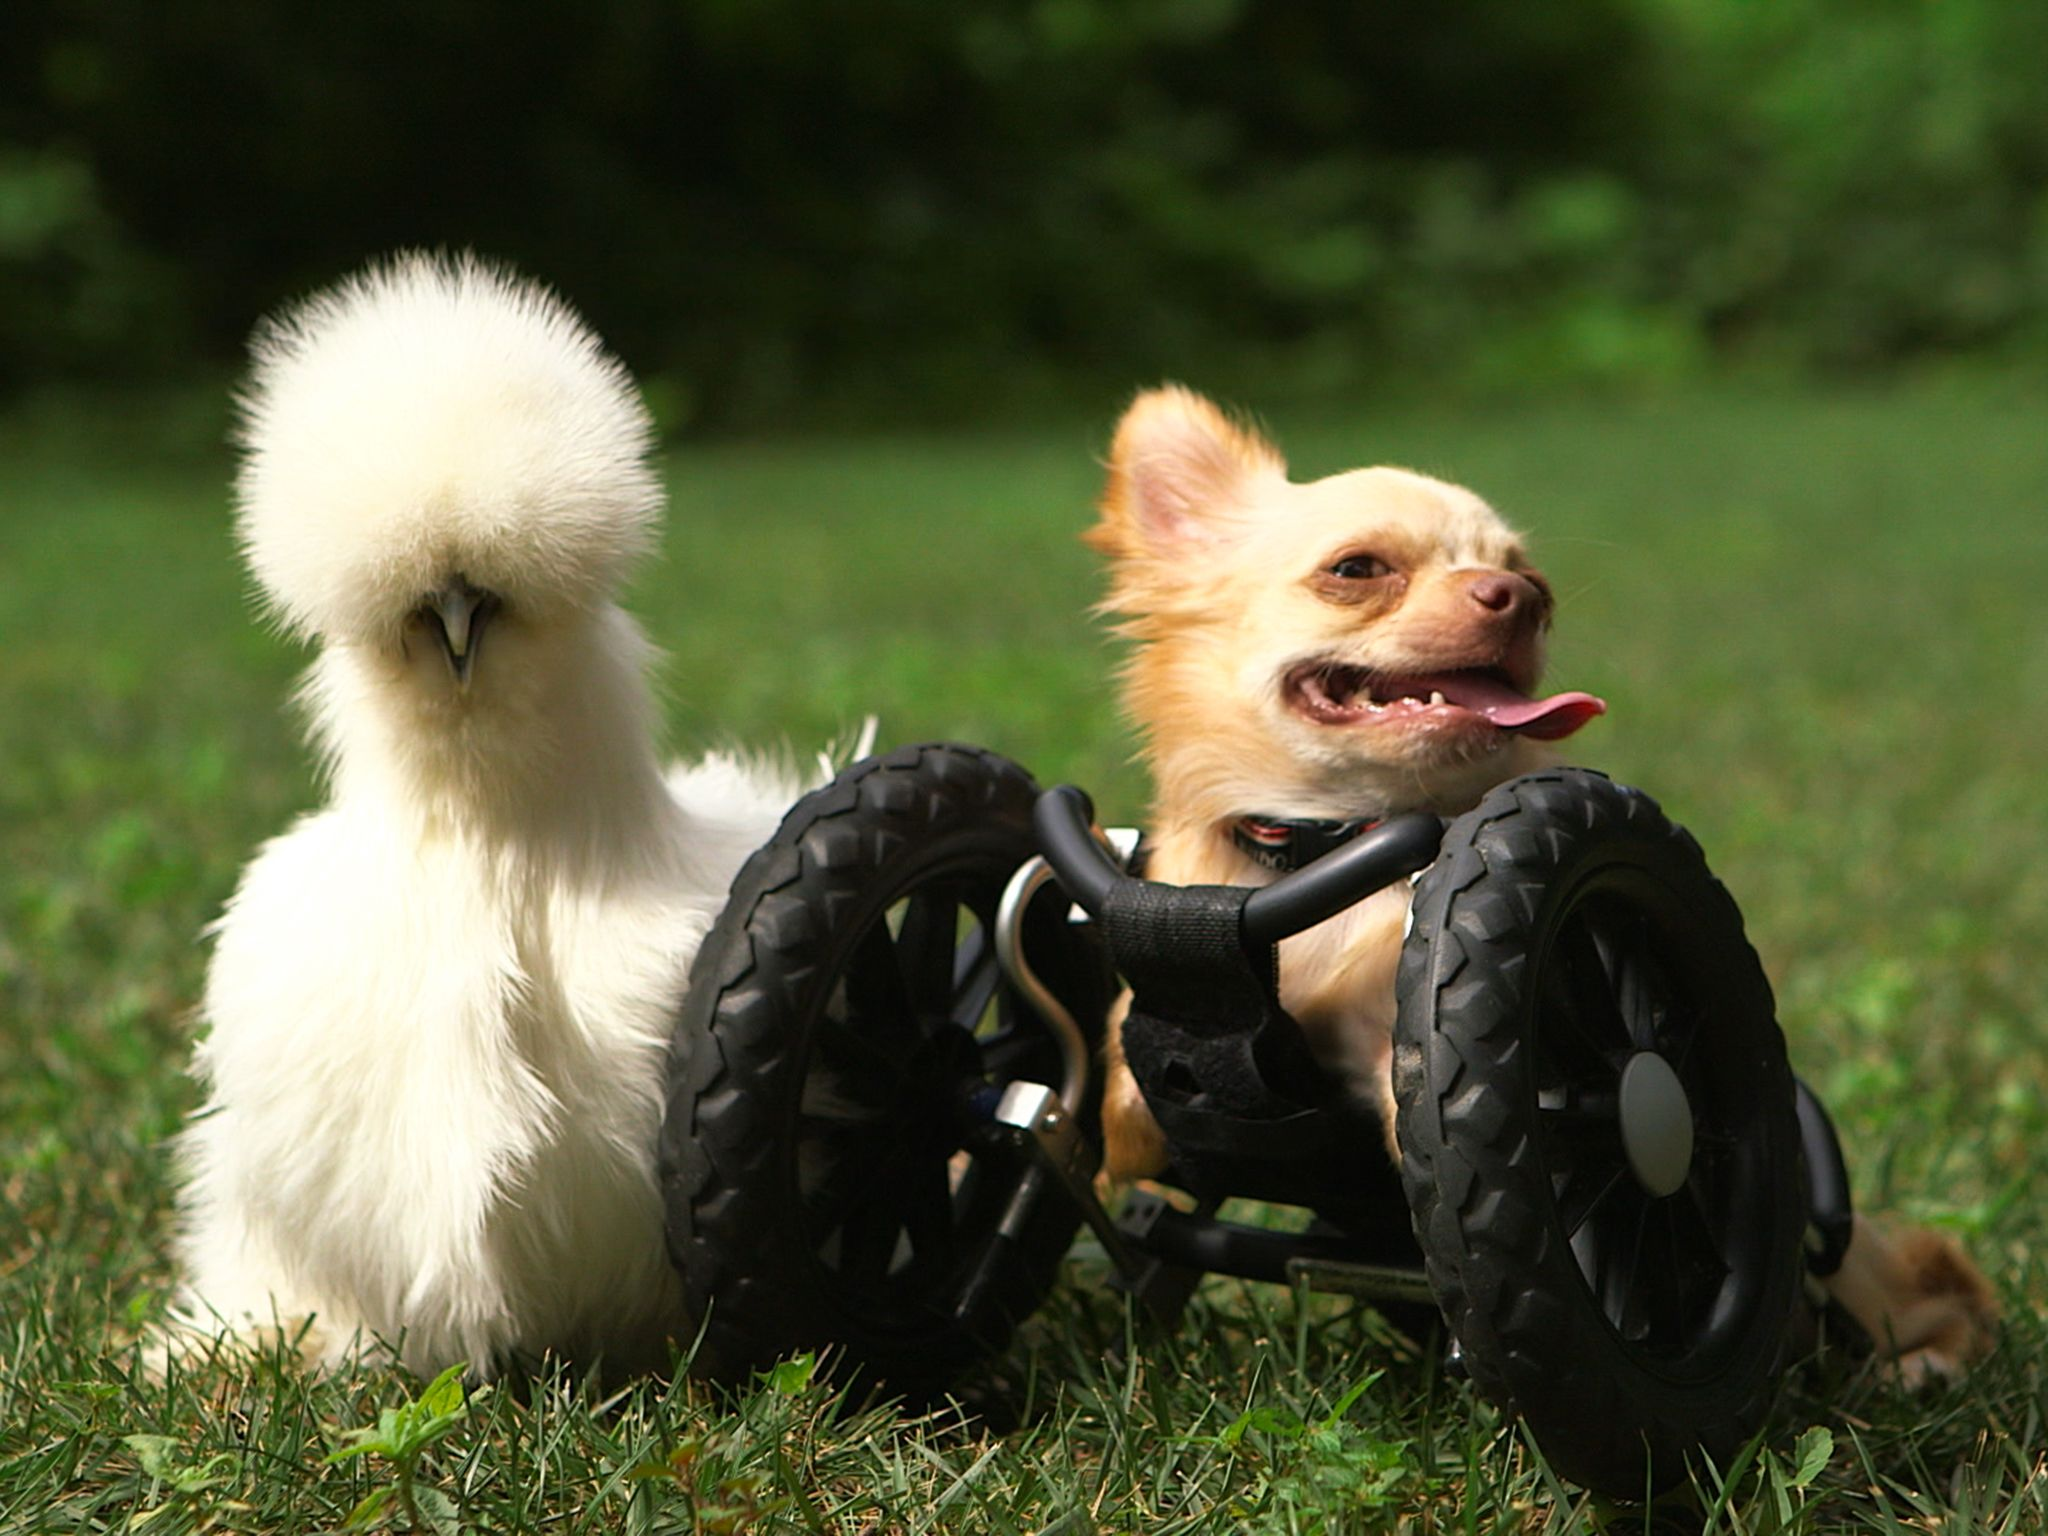 Two-legged chihuahua Roo is right next to his best buddy Penny, a silkie chicken. Both of these... [Photo of the day - آوریل 2015]